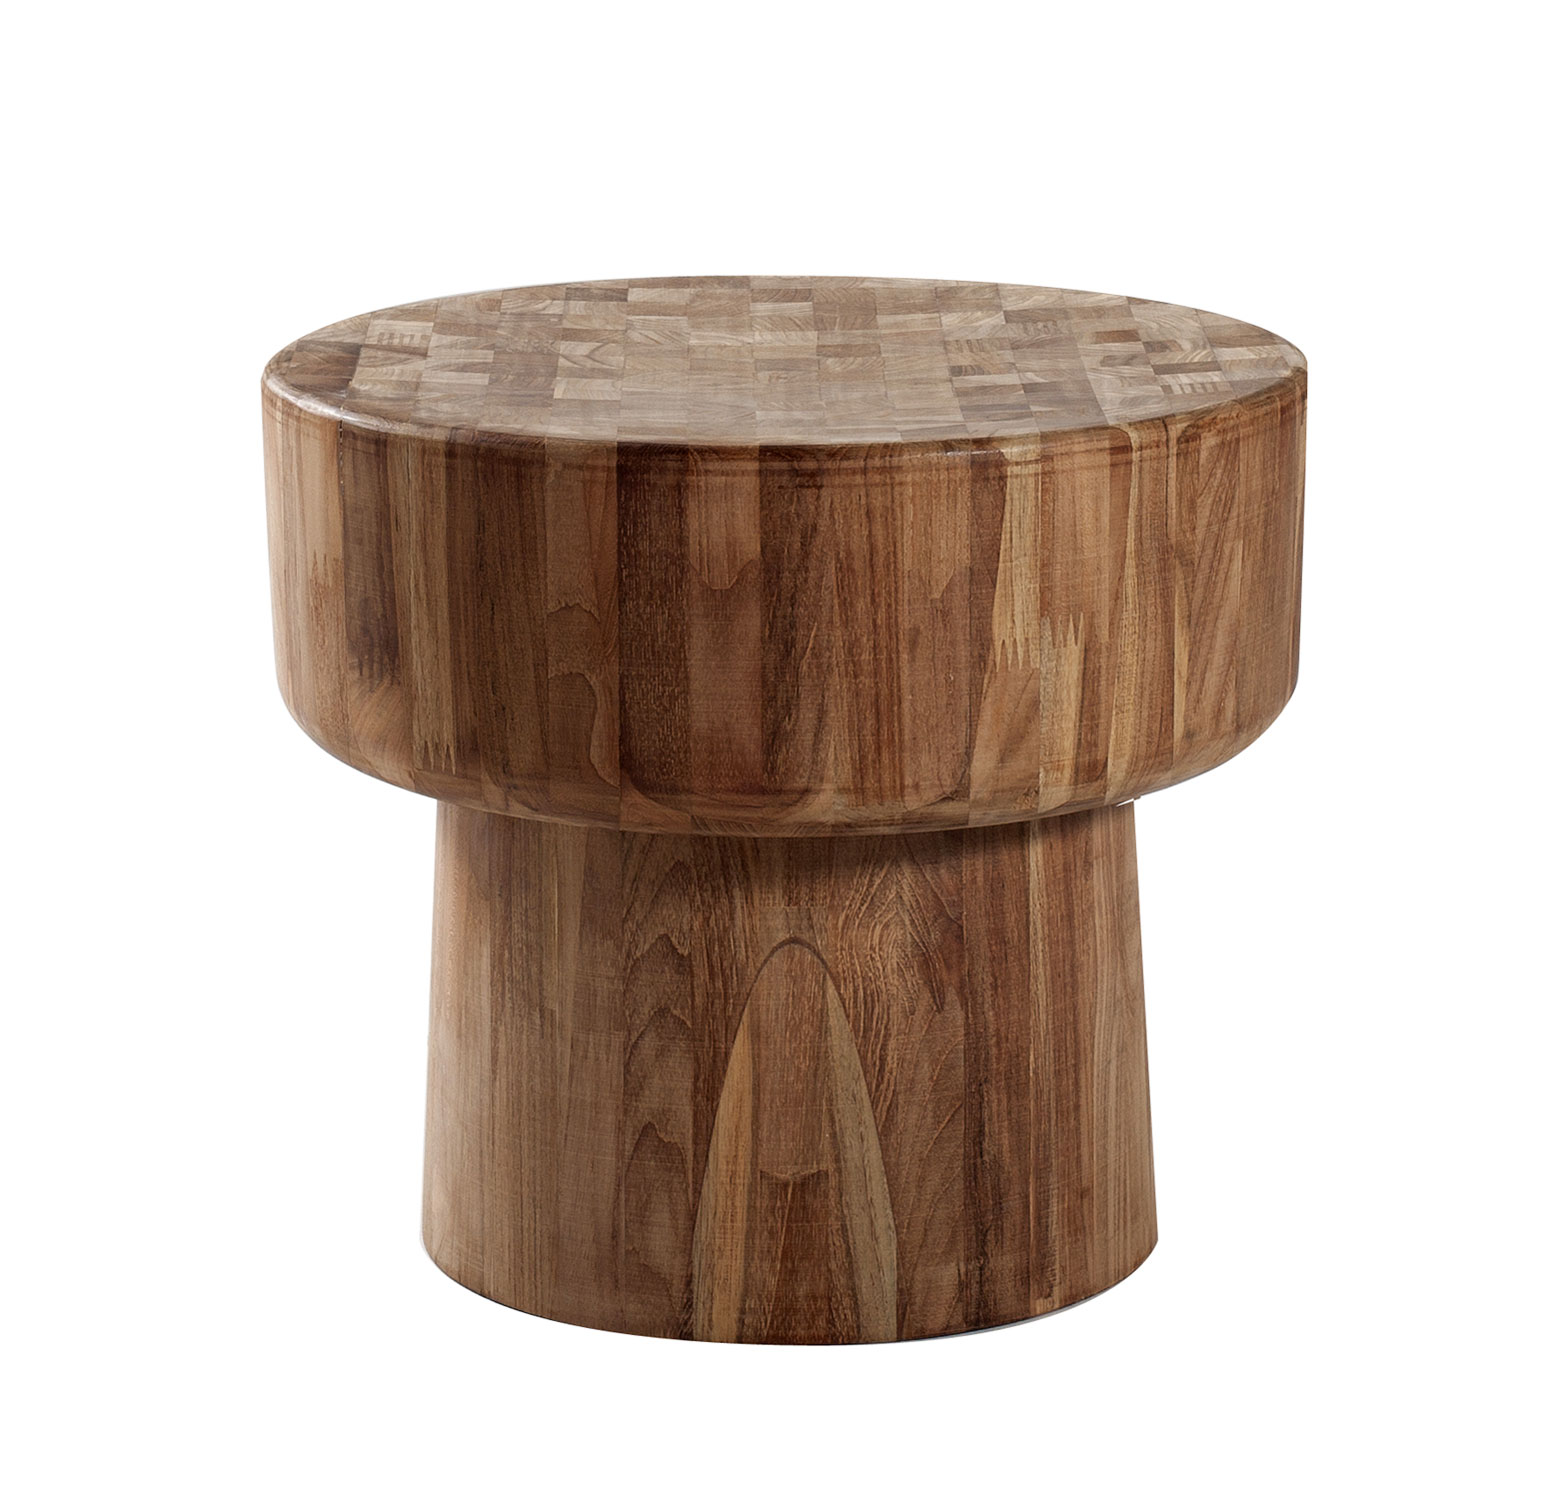 furniture elegant teak end table sets traditional solid wood narrow set round side for living room bedroom wooden accent decorative interior design veneer laminate finished